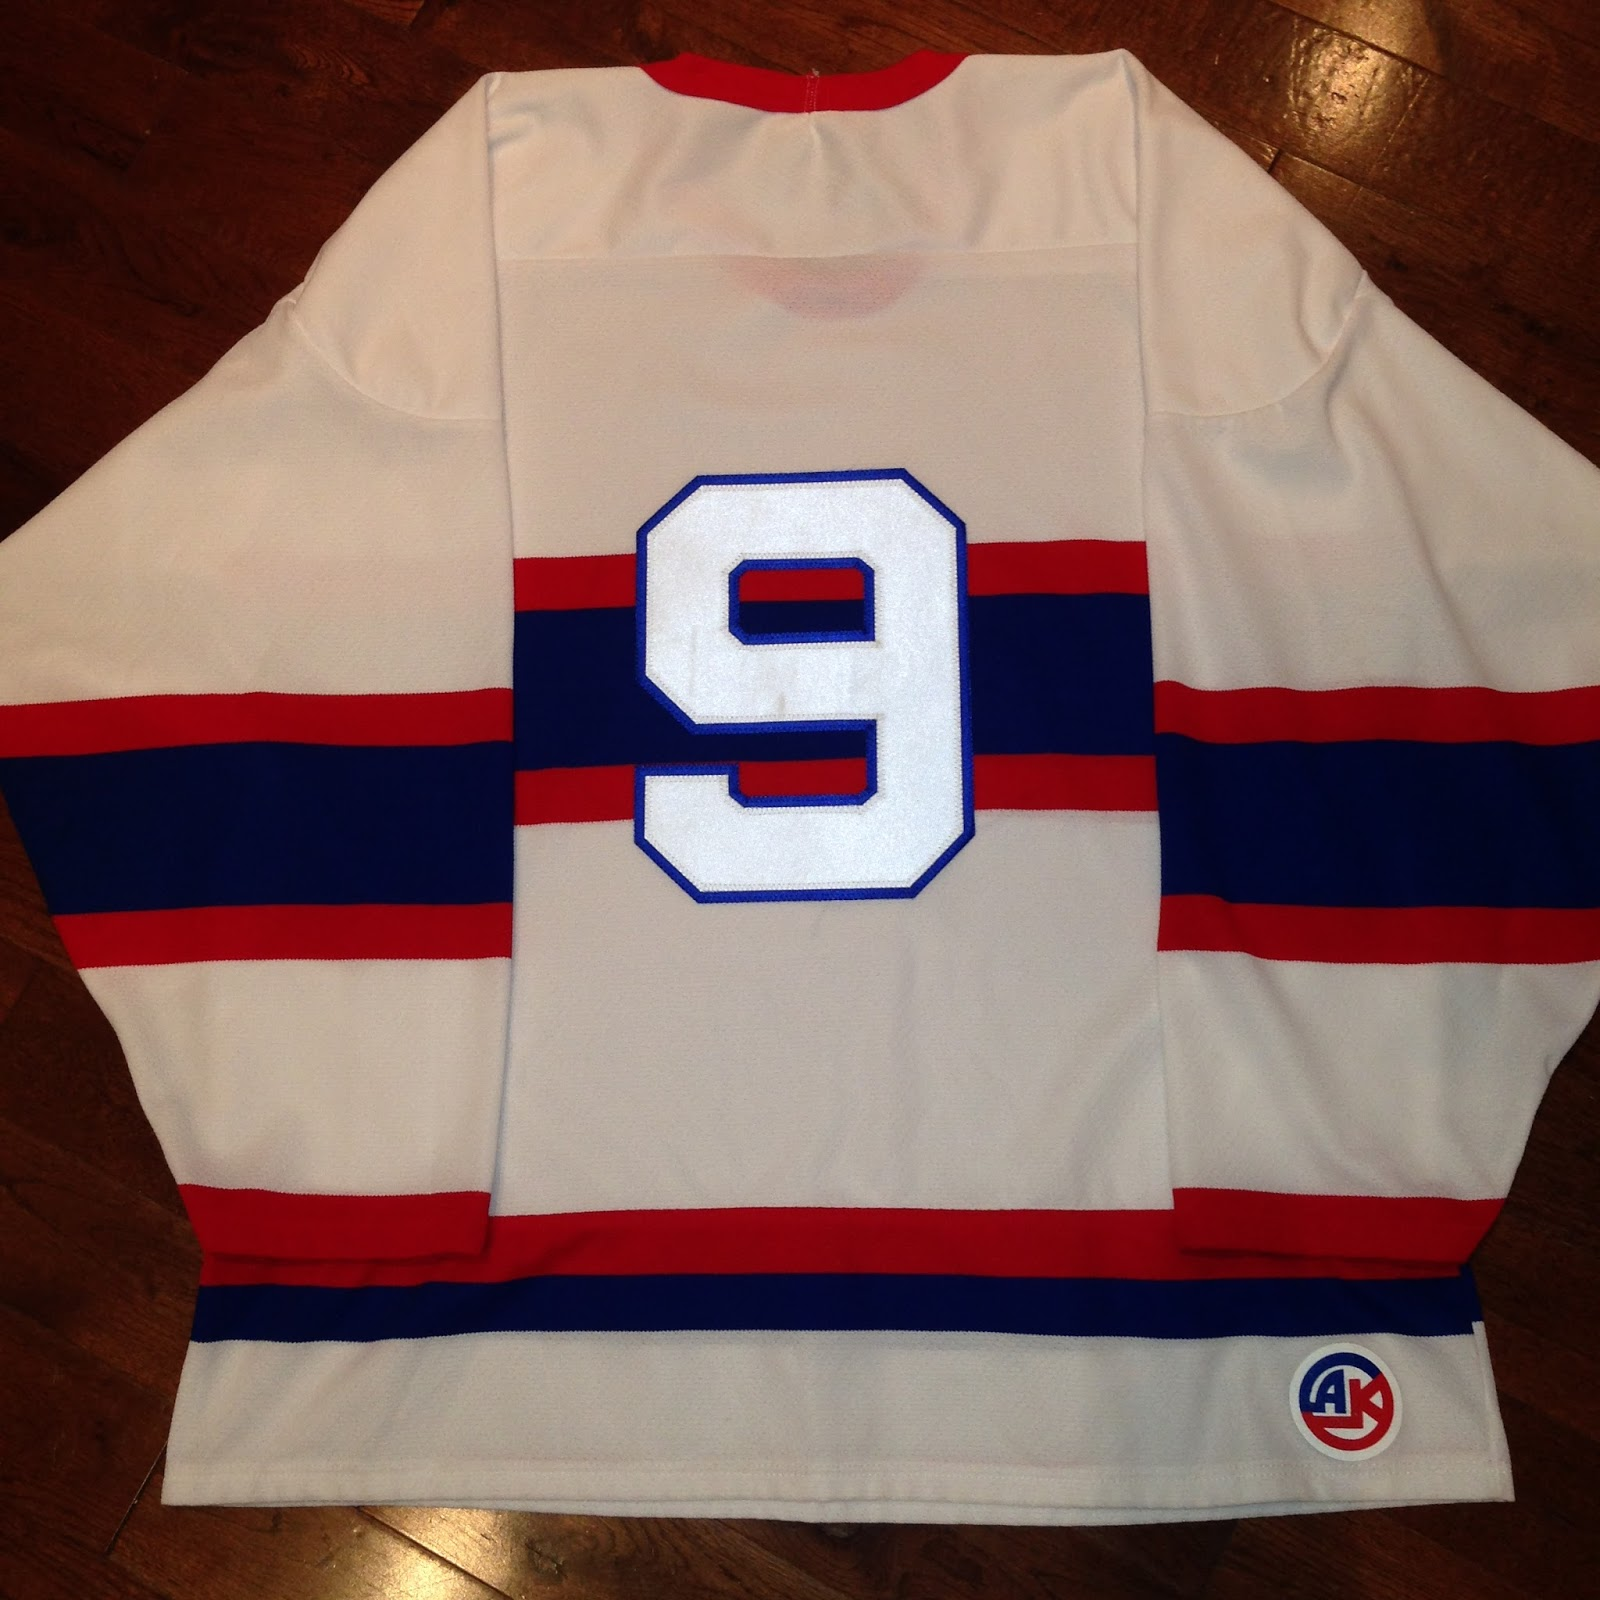 Posted here is a Montreal Canadiens Maurice